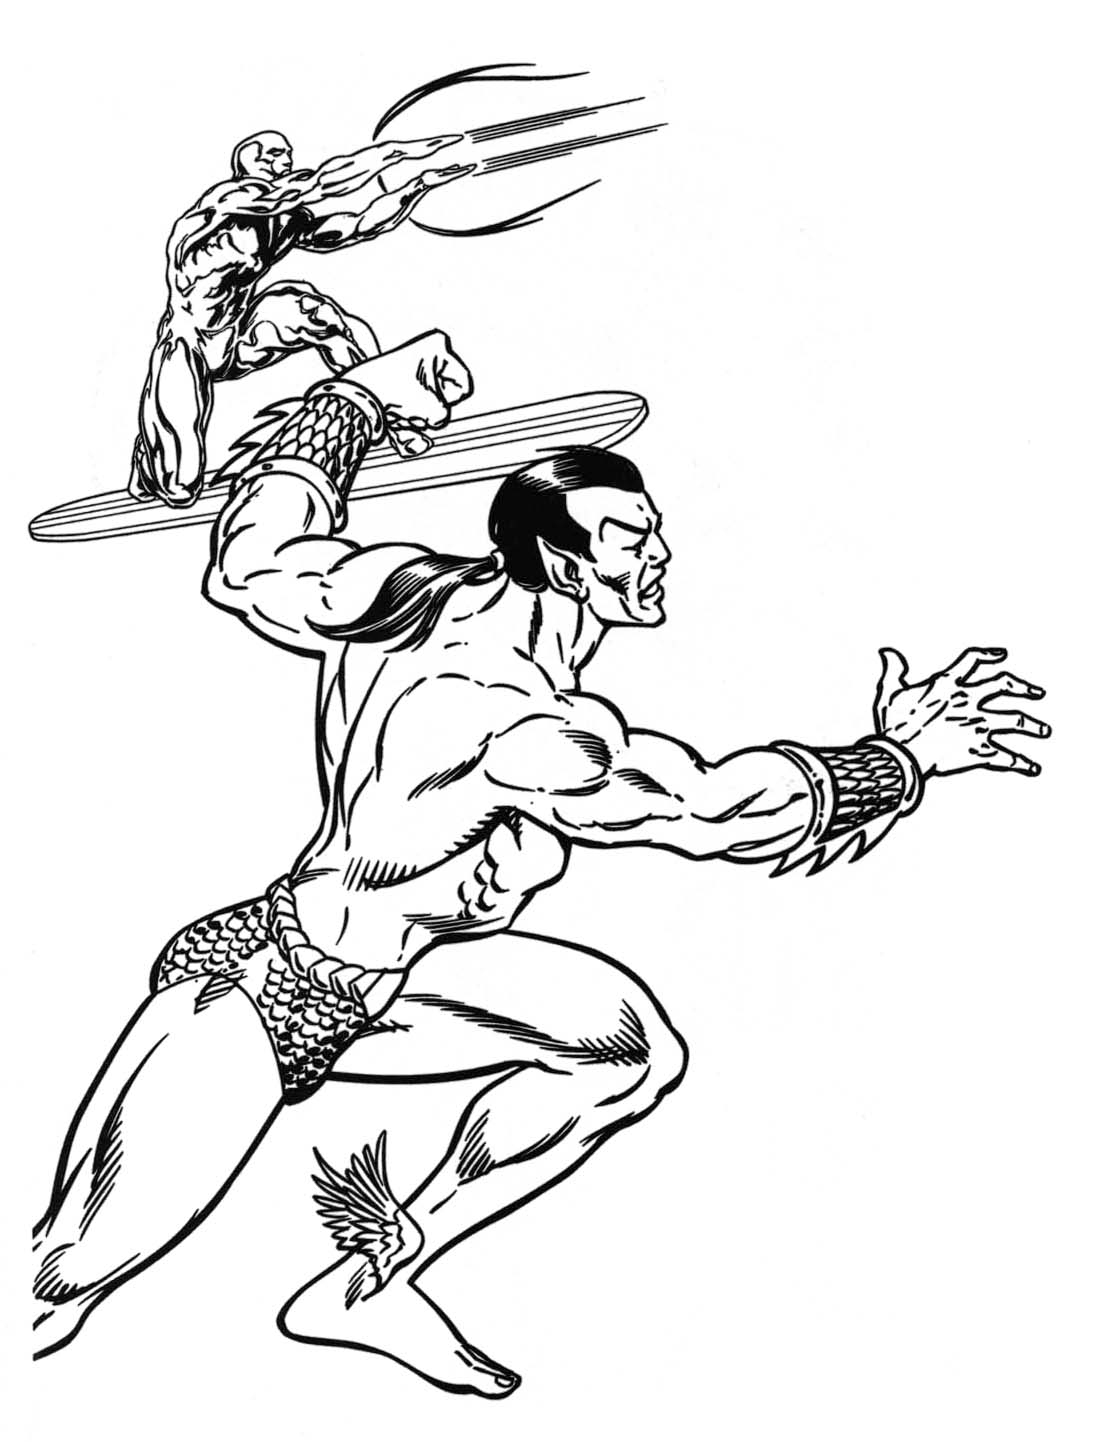 marvel superheroes coloring pages - photo#8